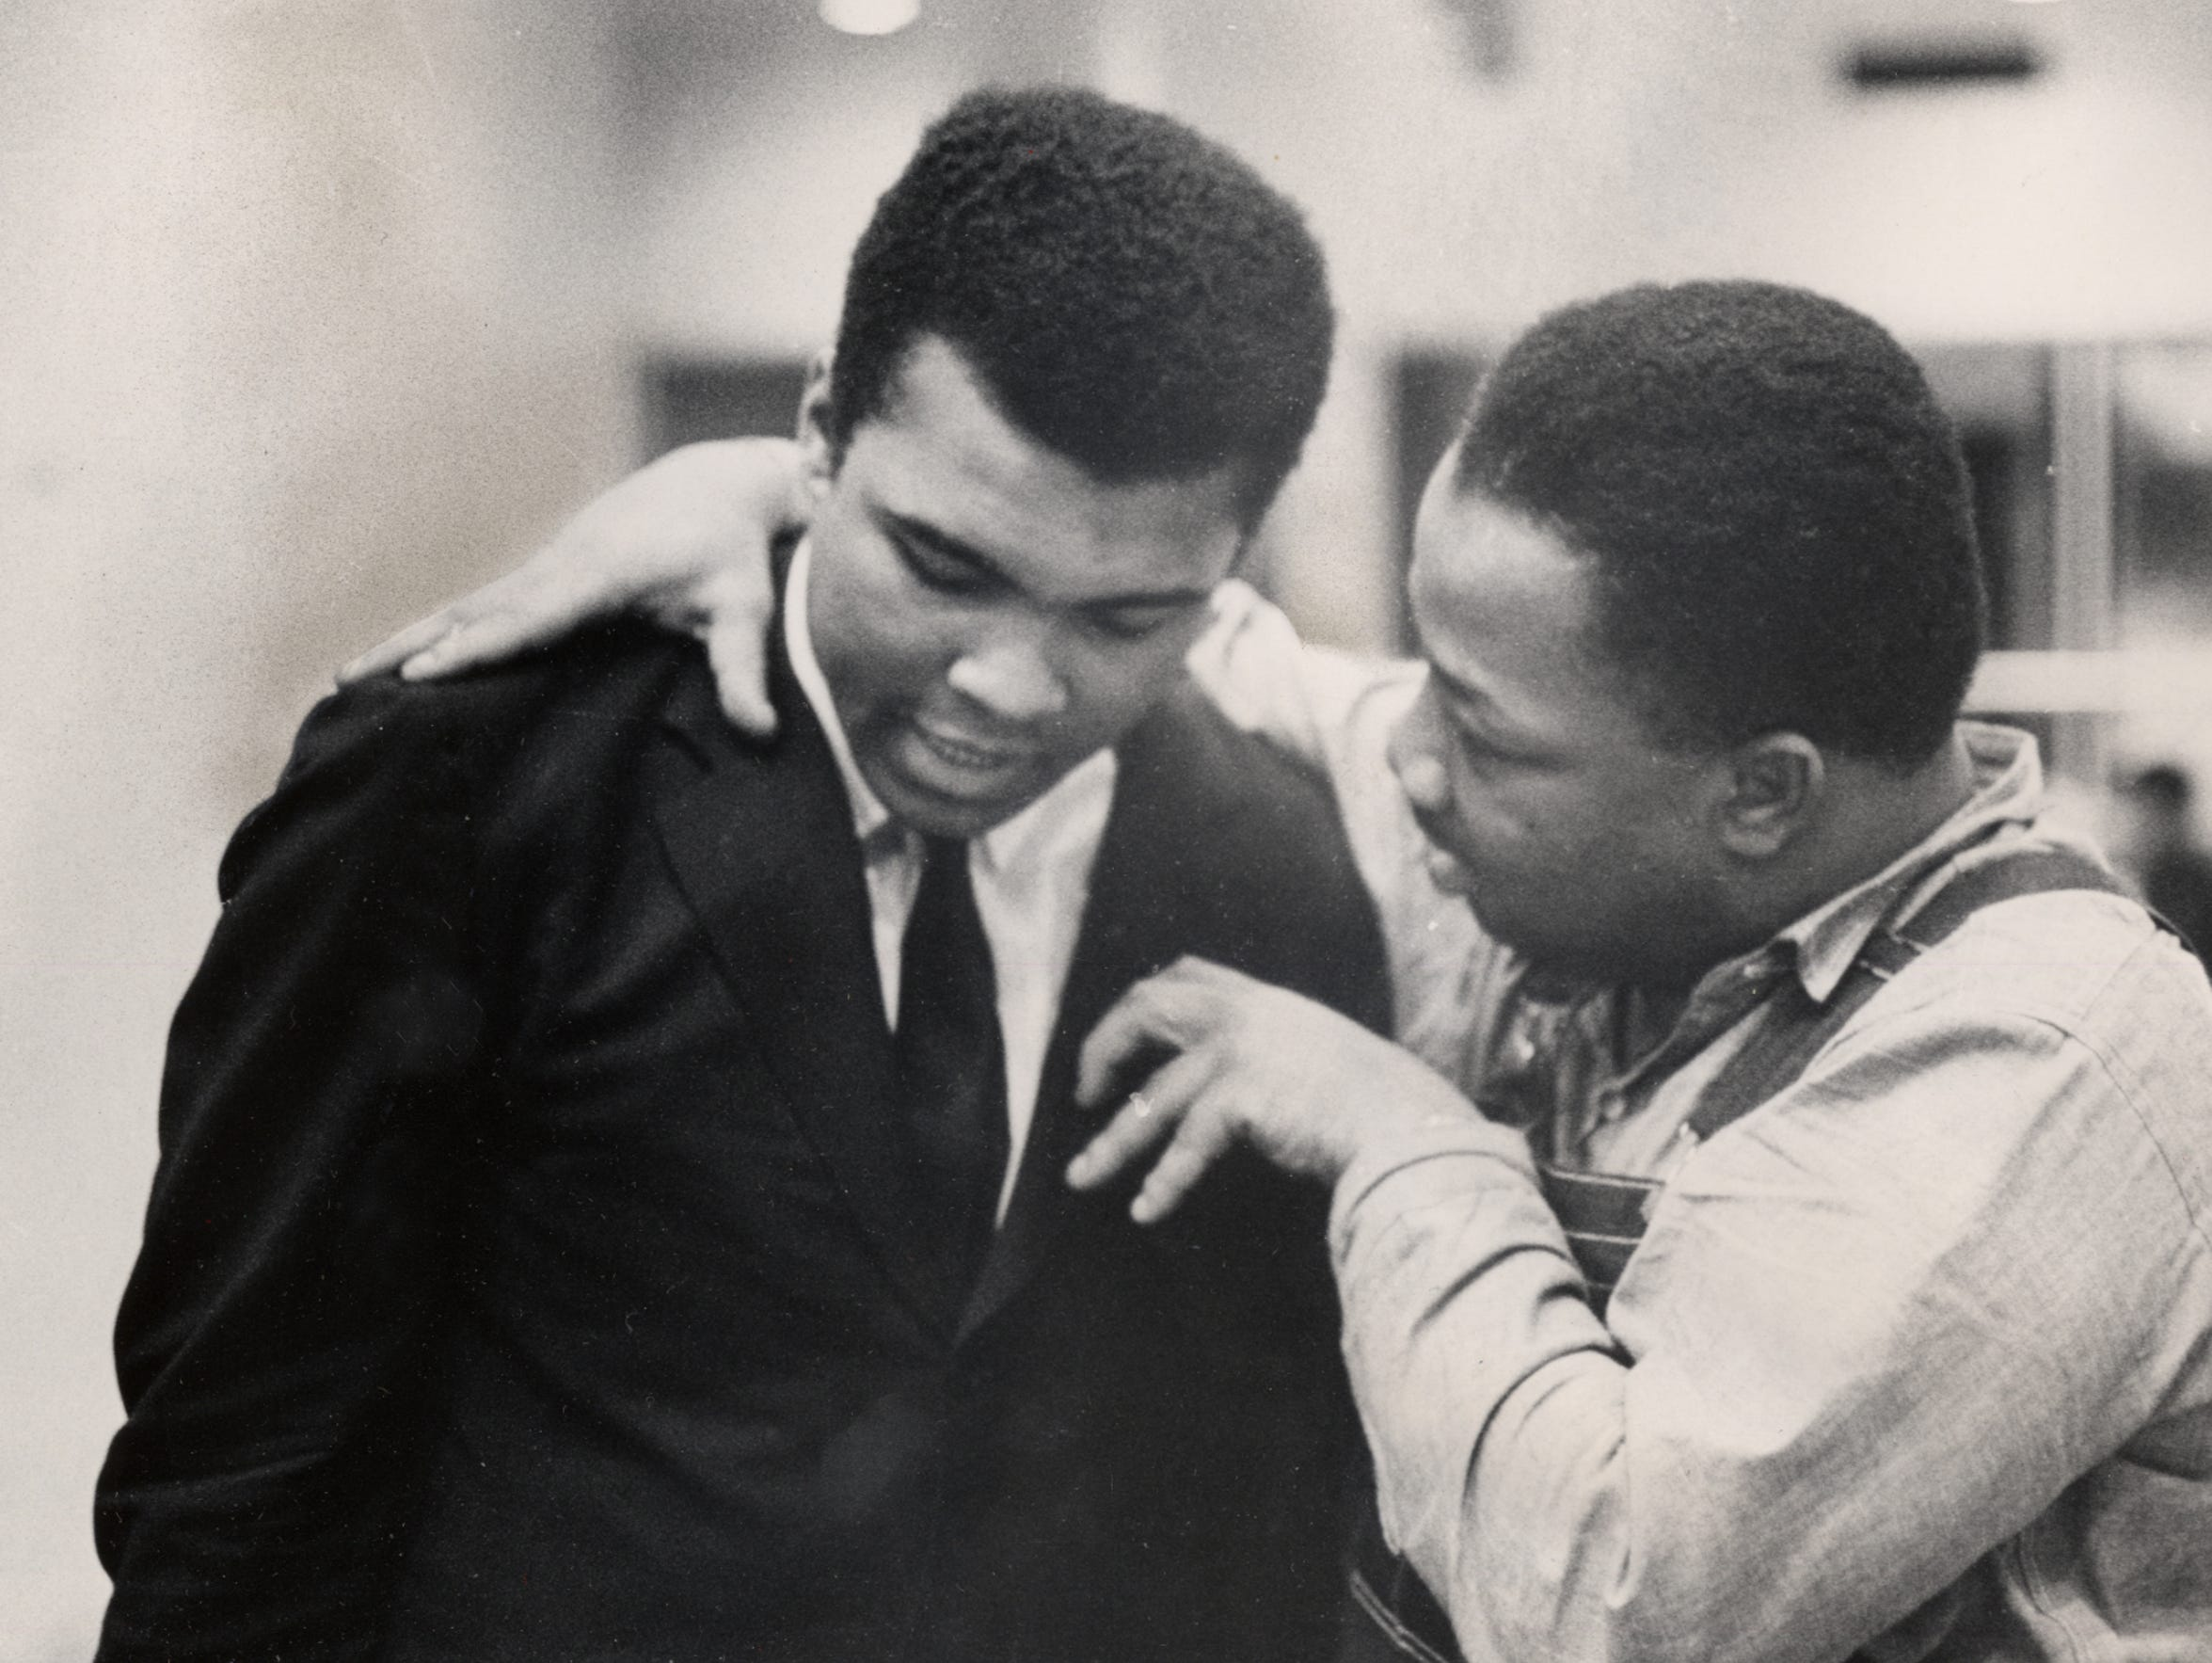 The Rev. A.D. Williams King, right, chats with another